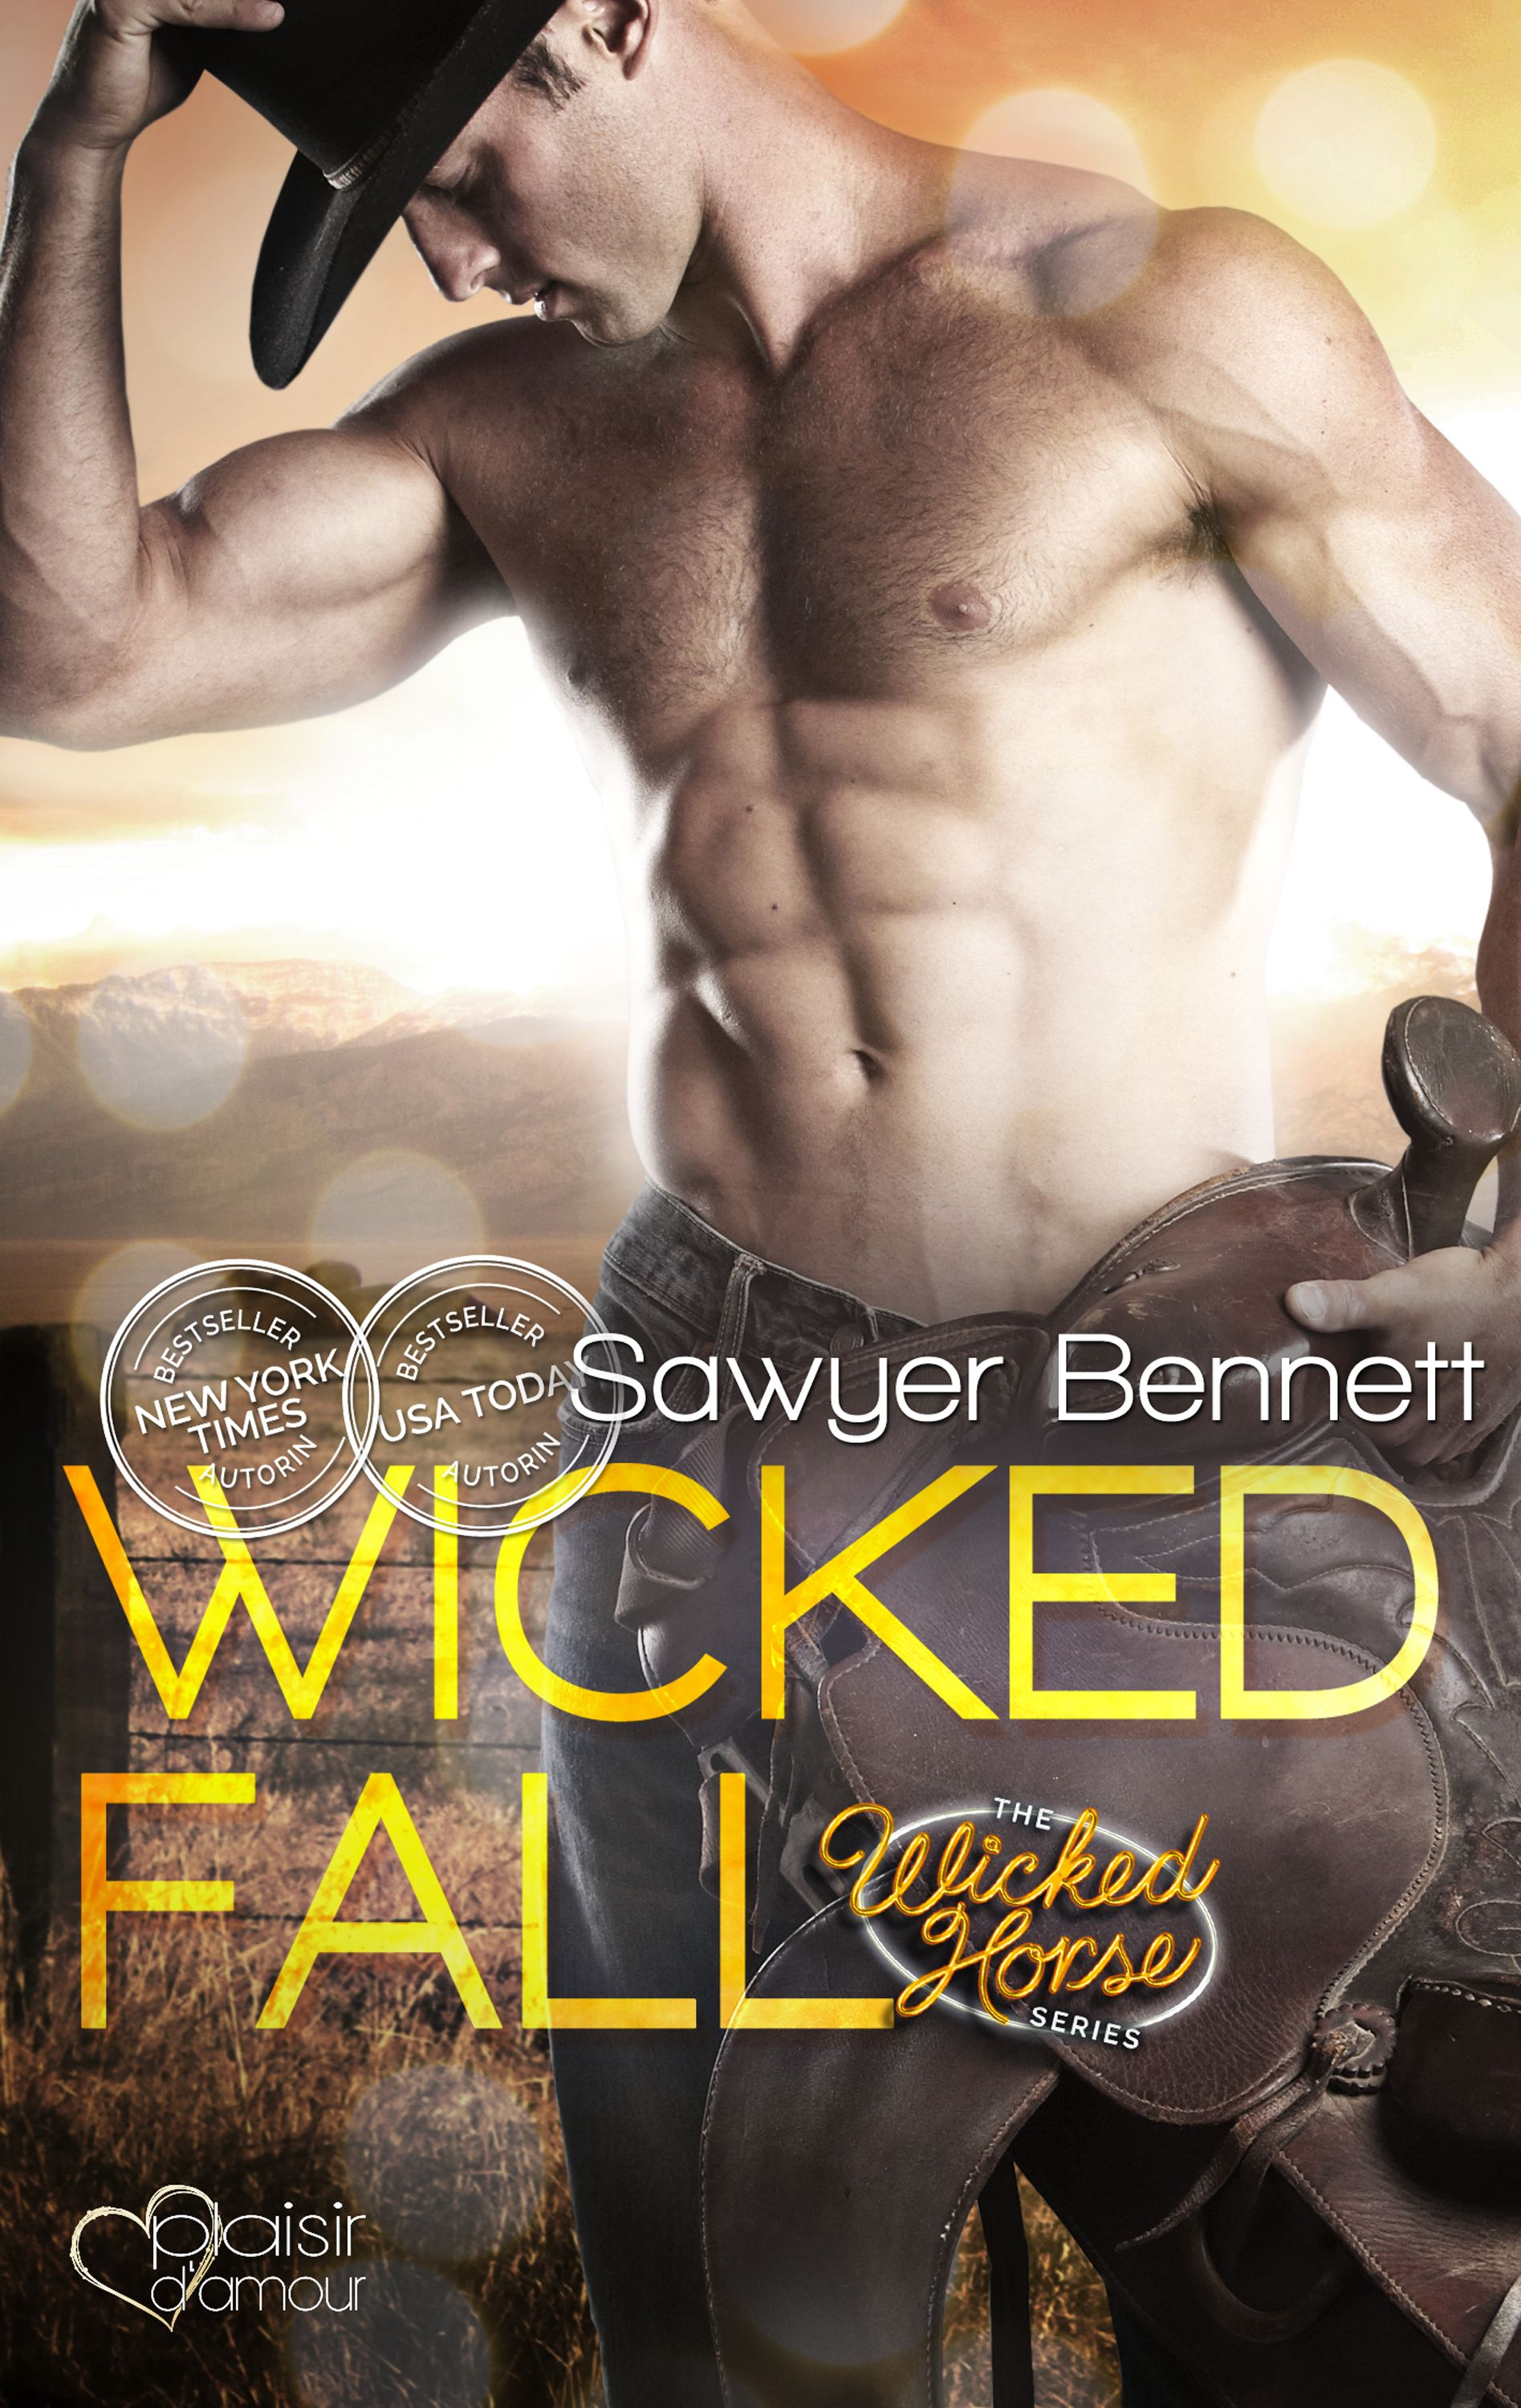 Sawyer Bennett The Wicked Horse 1: Wicked Fall футболка wicked one wicked one wi015emwob39